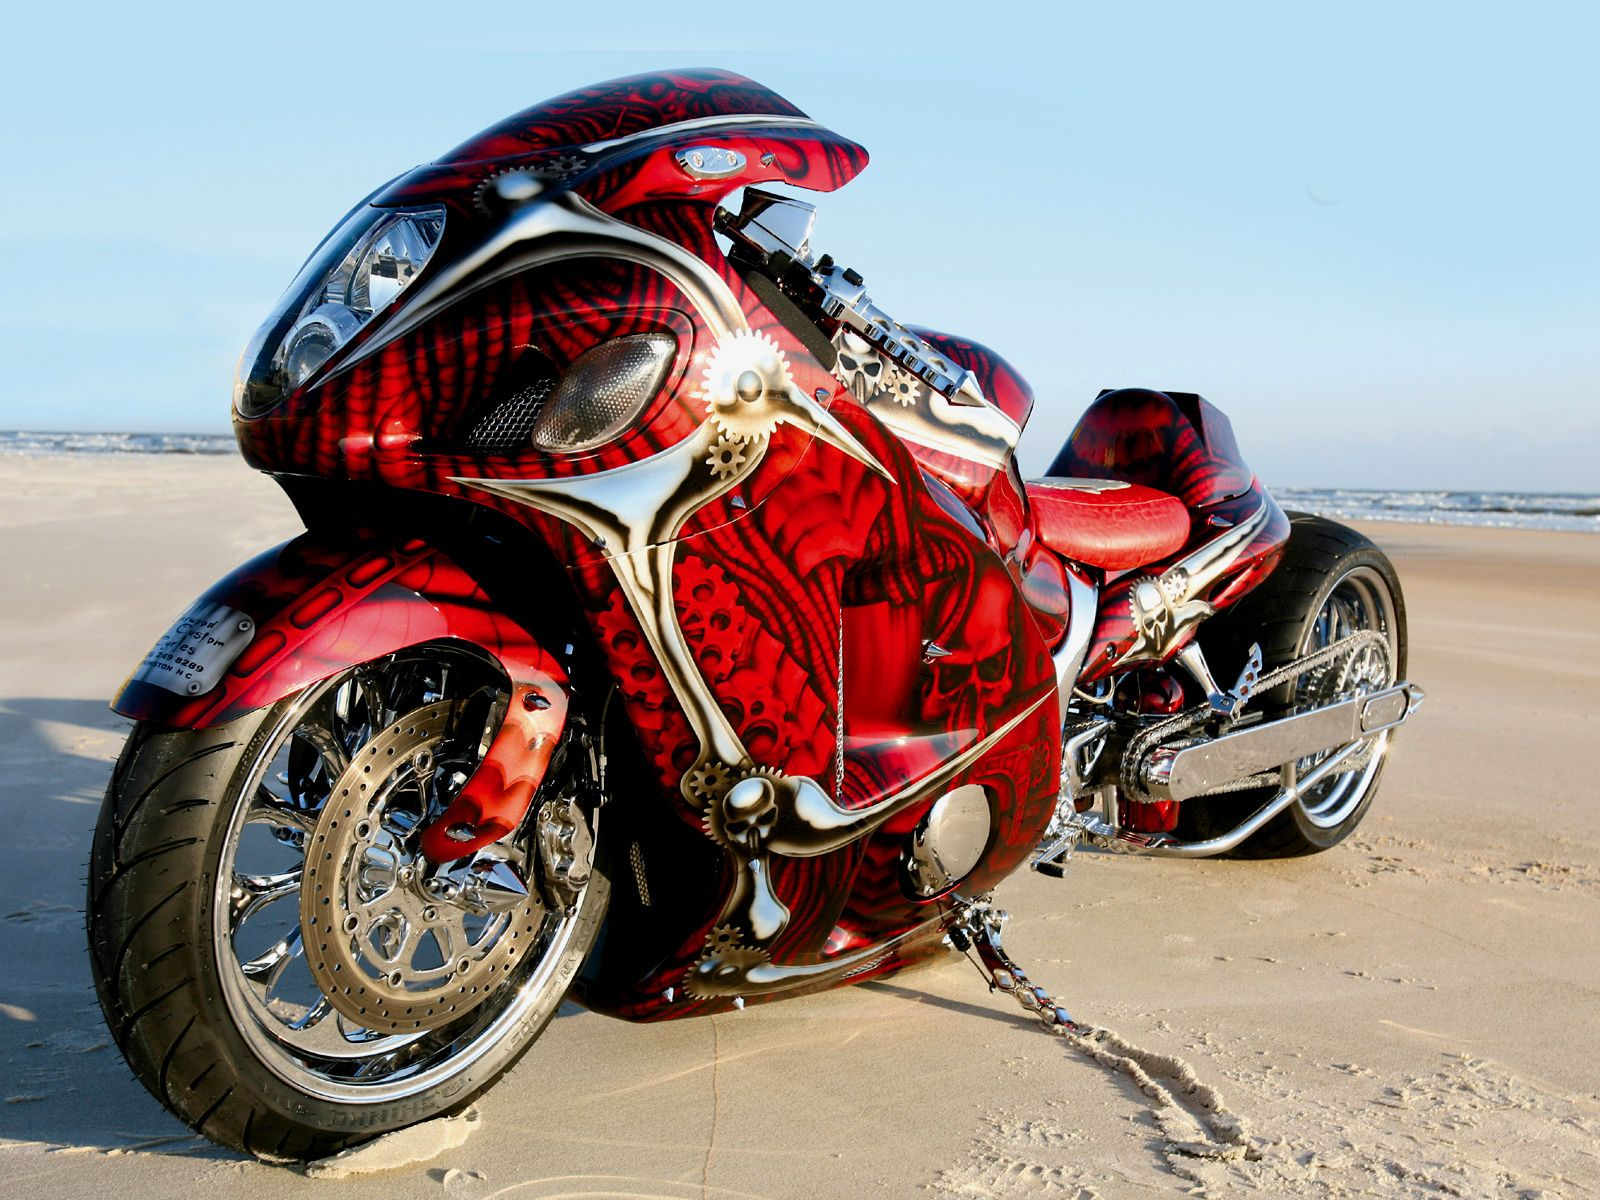 hayabusa | suzuki hayabusa customized bike wallpaper | bikes